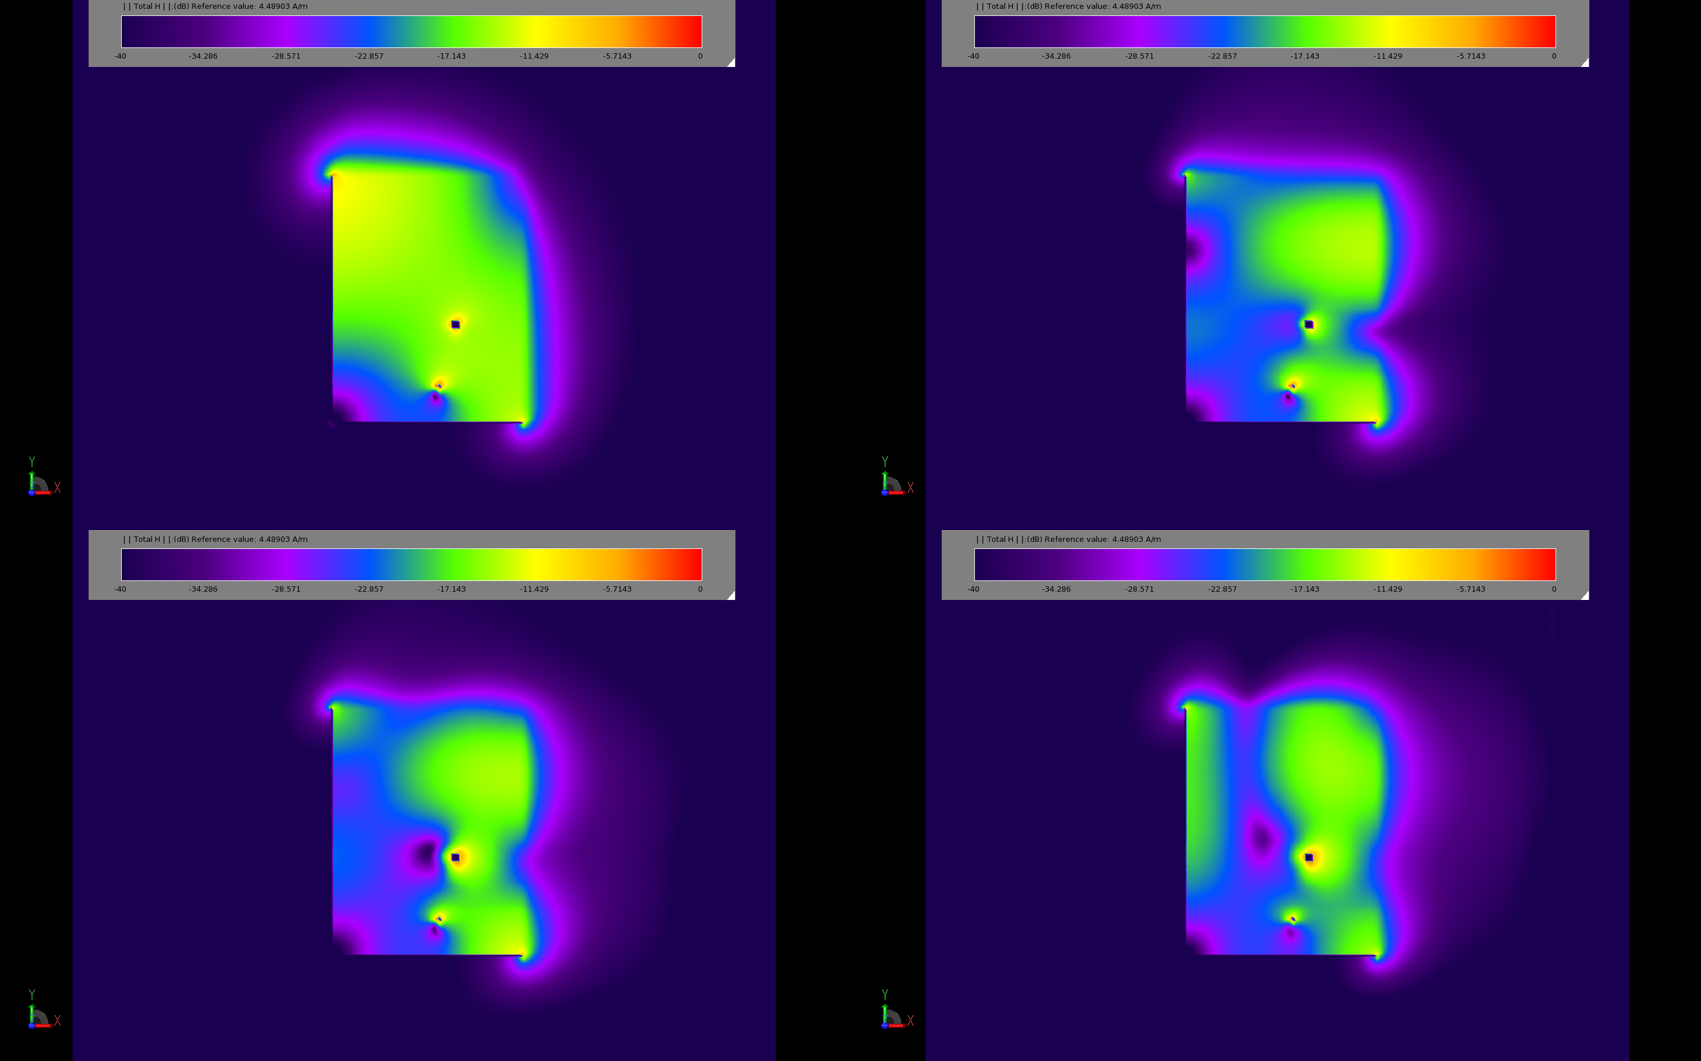 Figure 3: Plots of the steady state magnetic field distribution show the different operating modes of the patch. The top left image (3a) is at 2.45 GHz while the top right (3b) is at 5.2 GHz. The bottom two images (3c and 3d) show the response at 5.5 and 5.8 GHz.